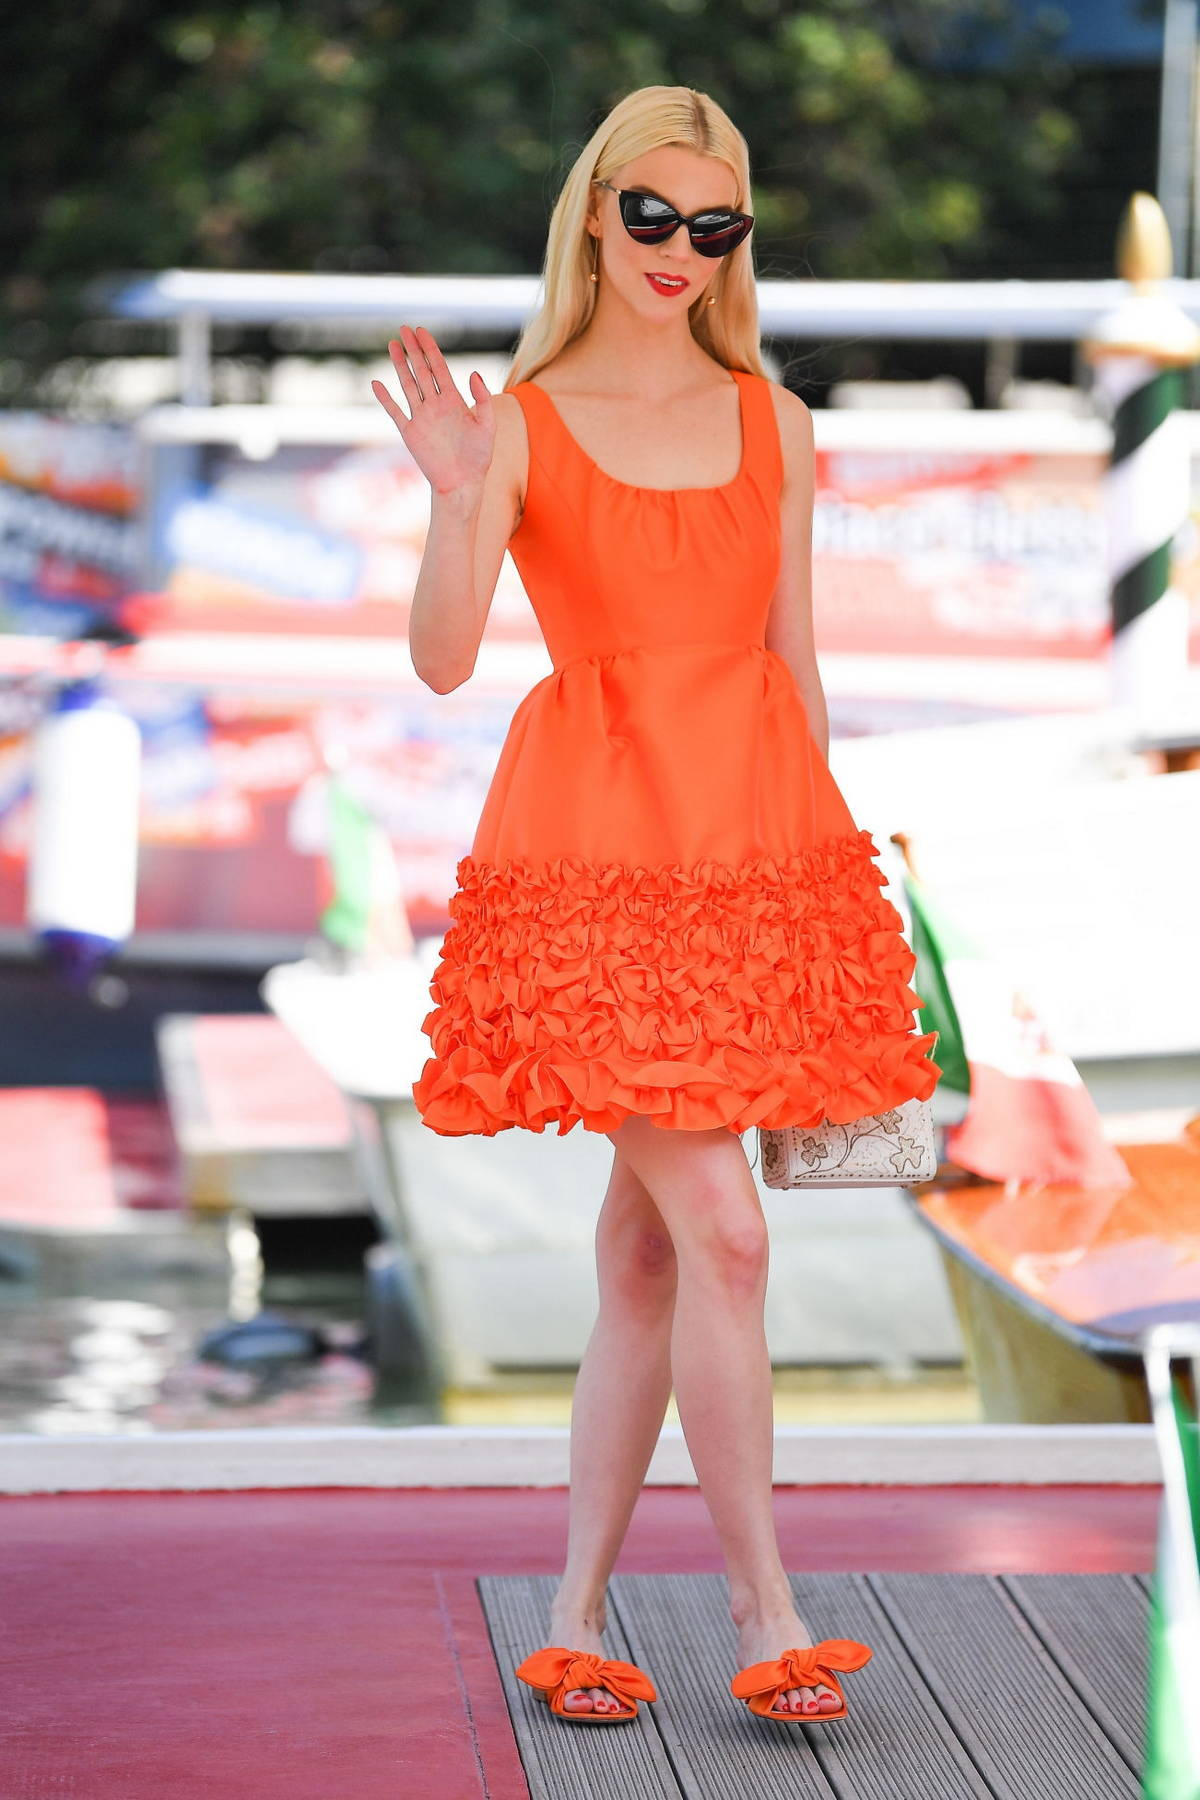 Anya Taylor-Joy looks cute in an orange dress while arriving at the 78th Venice International Film Festival in Venice, Italy